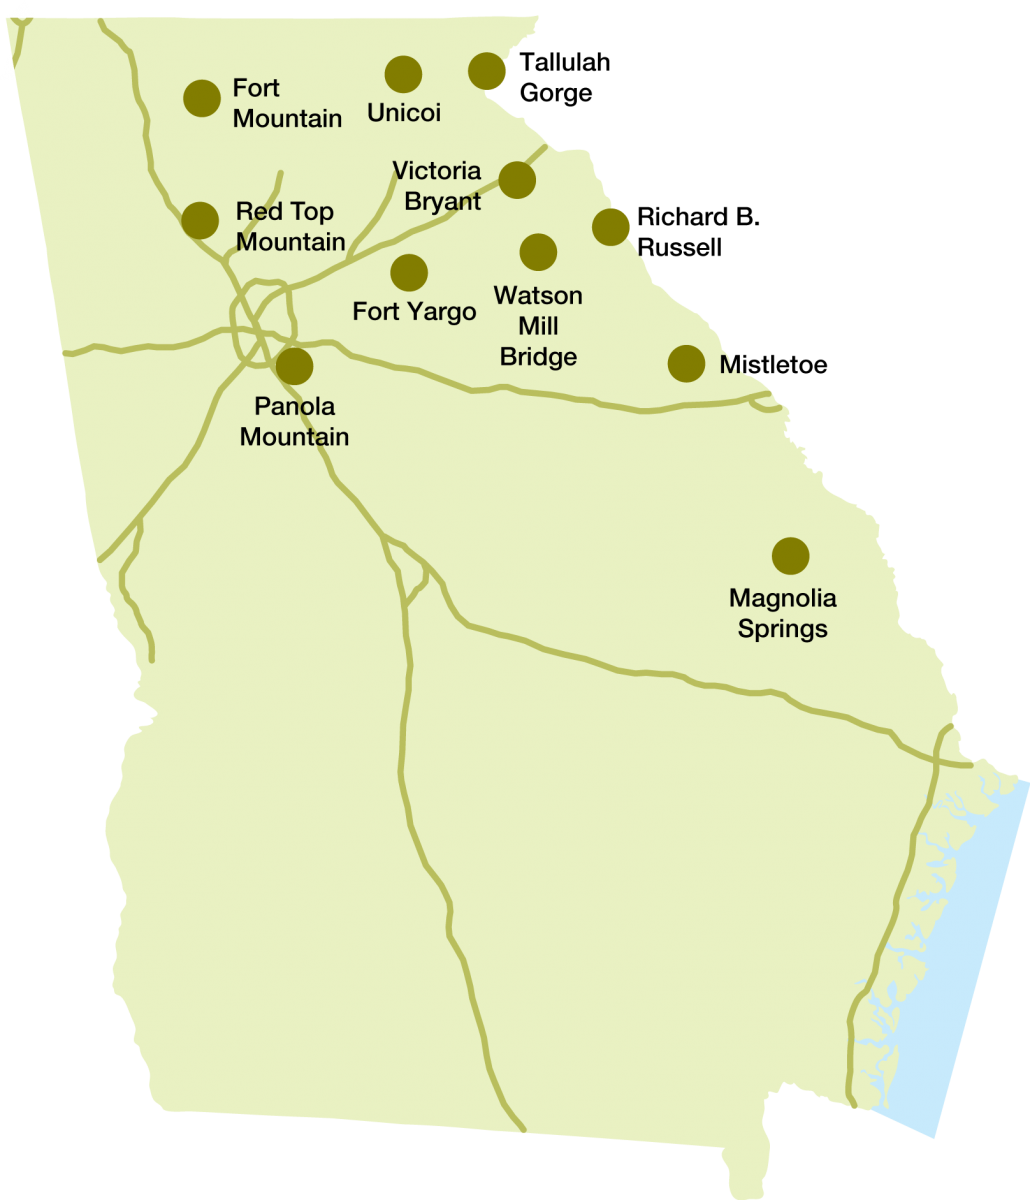 Georgia state parks historic sites map state parks historic sites publicscrutiny Images